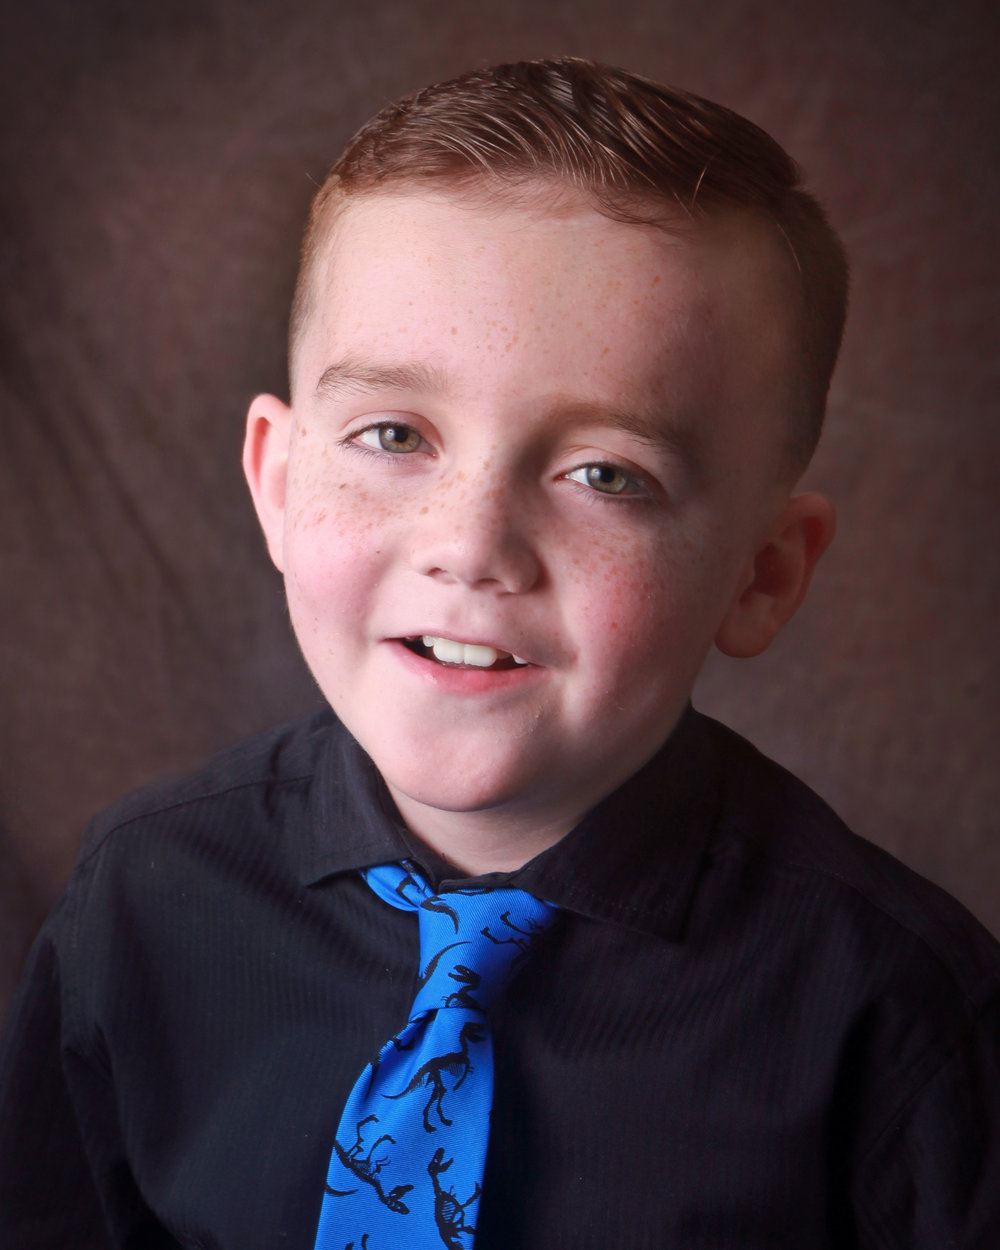 Abe Kelso, 7, rockwall